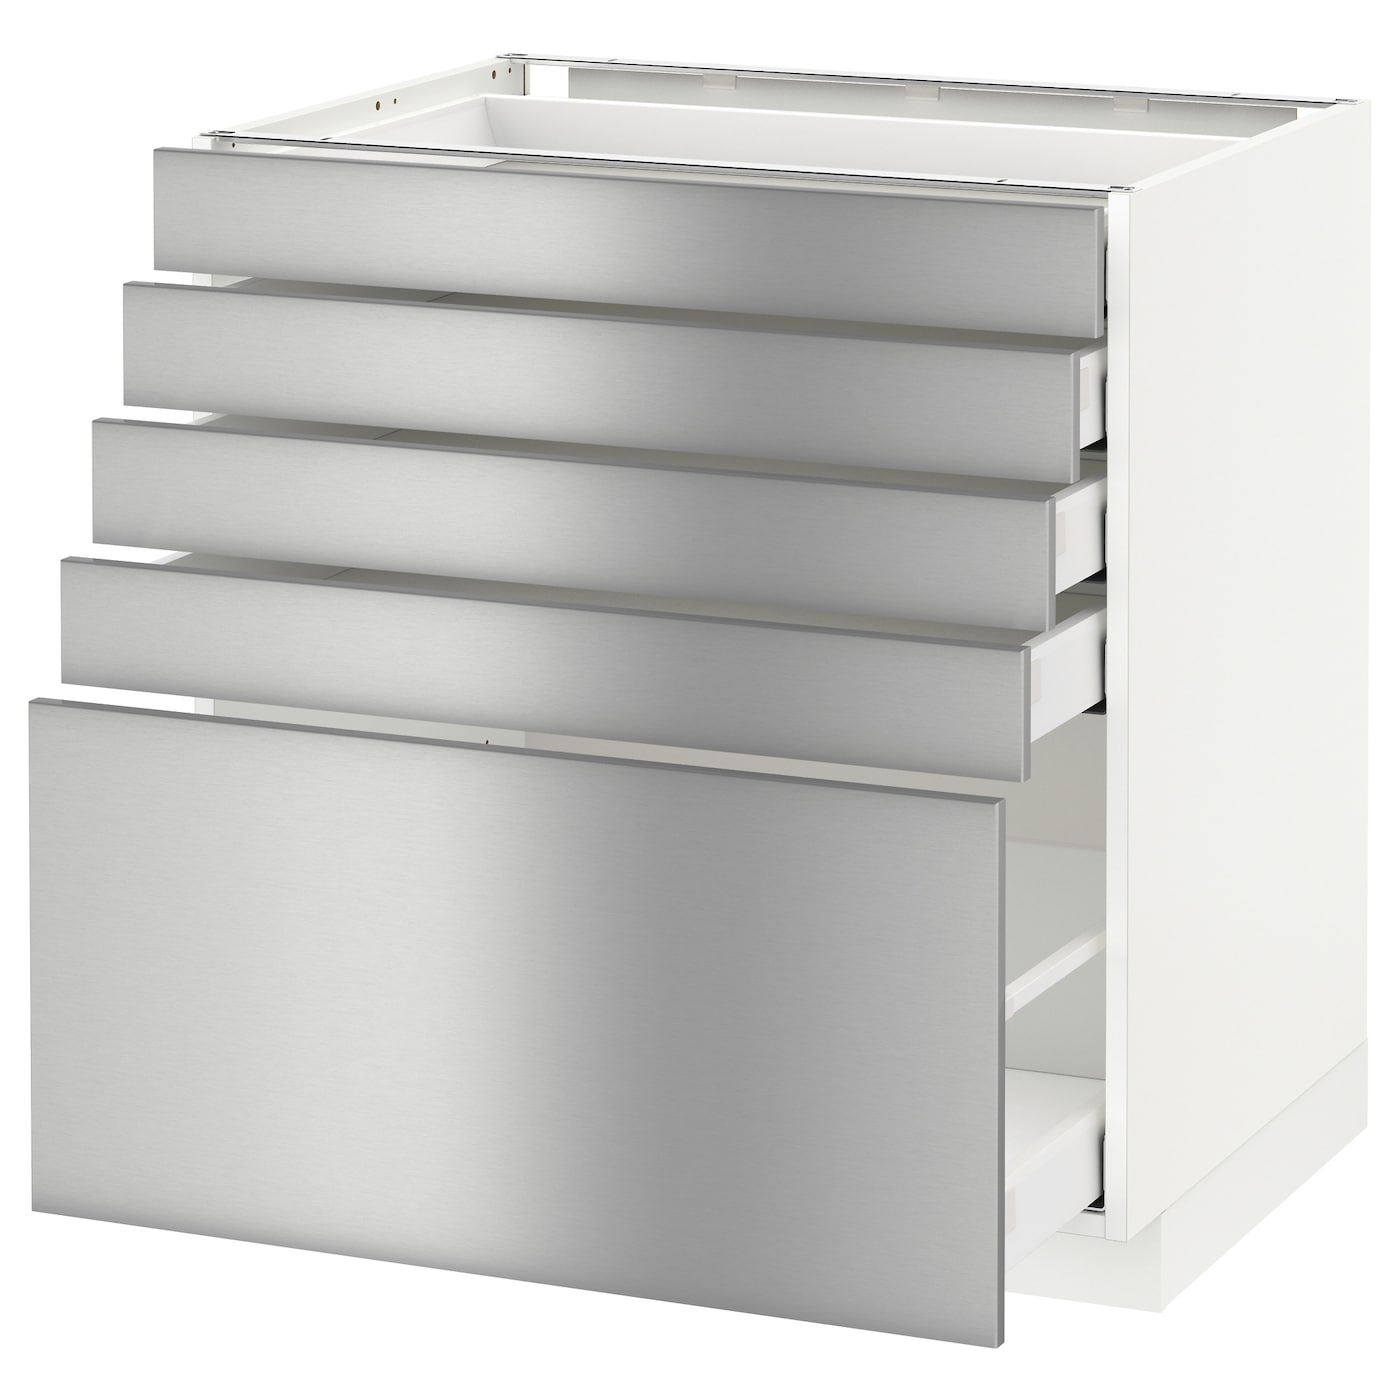 Stainless Kitchen Cabinet: METOD/MAXIMERA Base Cabinet With 5 Drawers White/grevsta